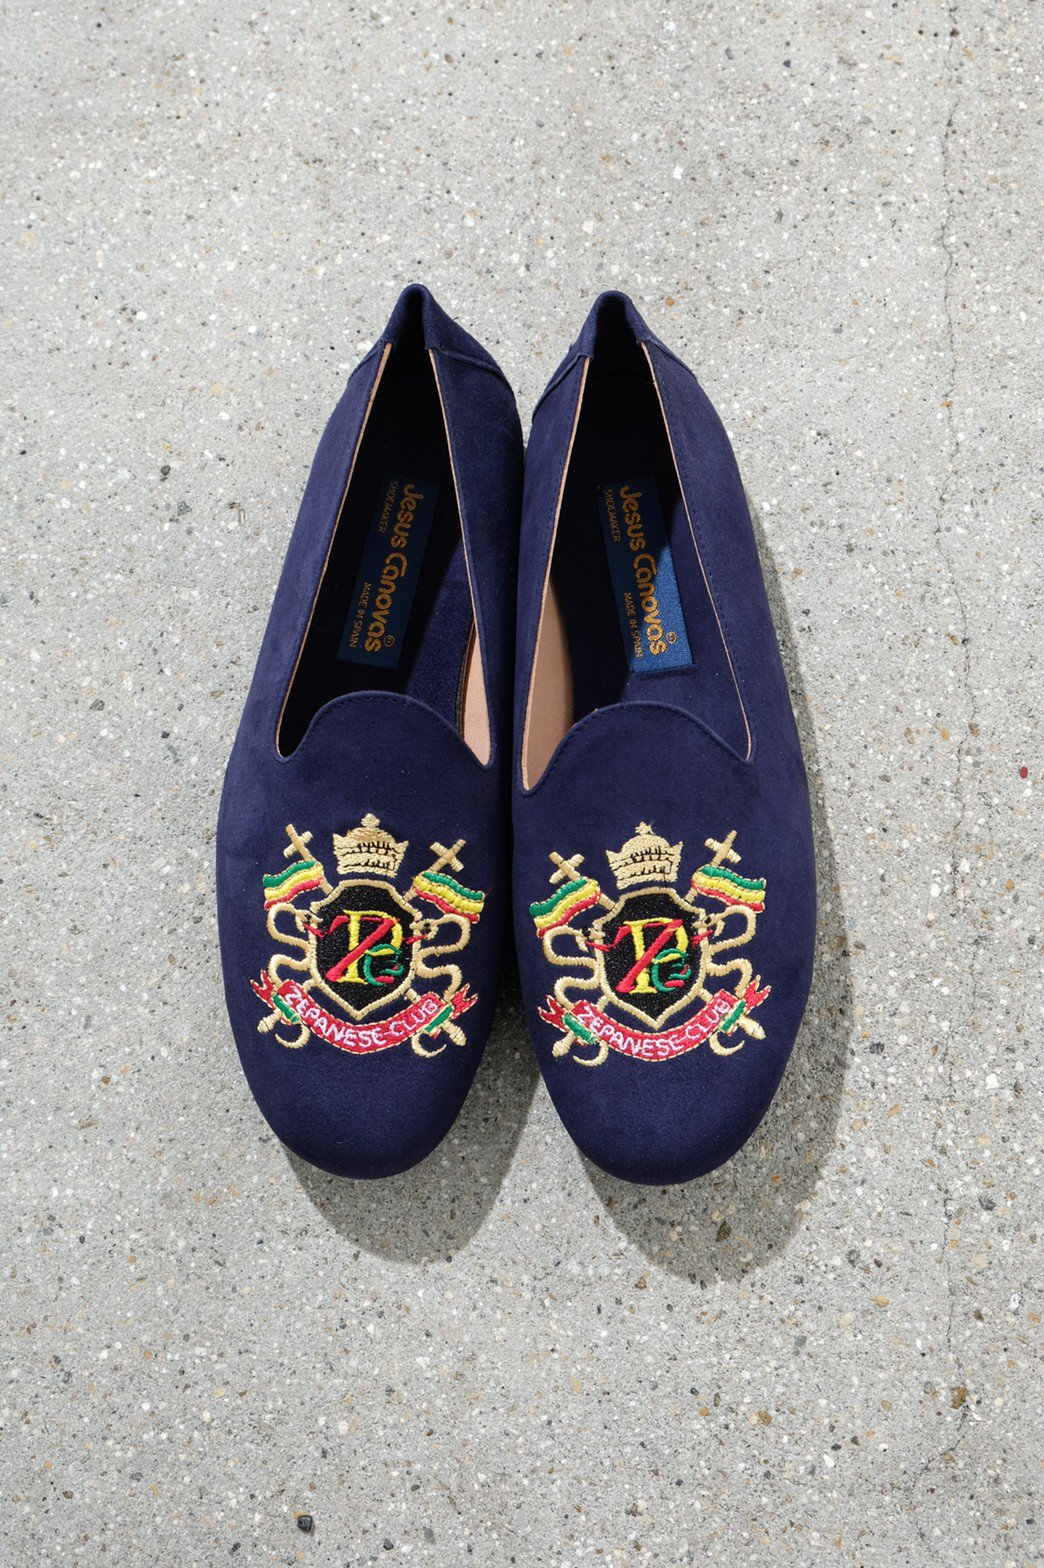 Jesus Canovas × Zepaeseclub / LOAFERS